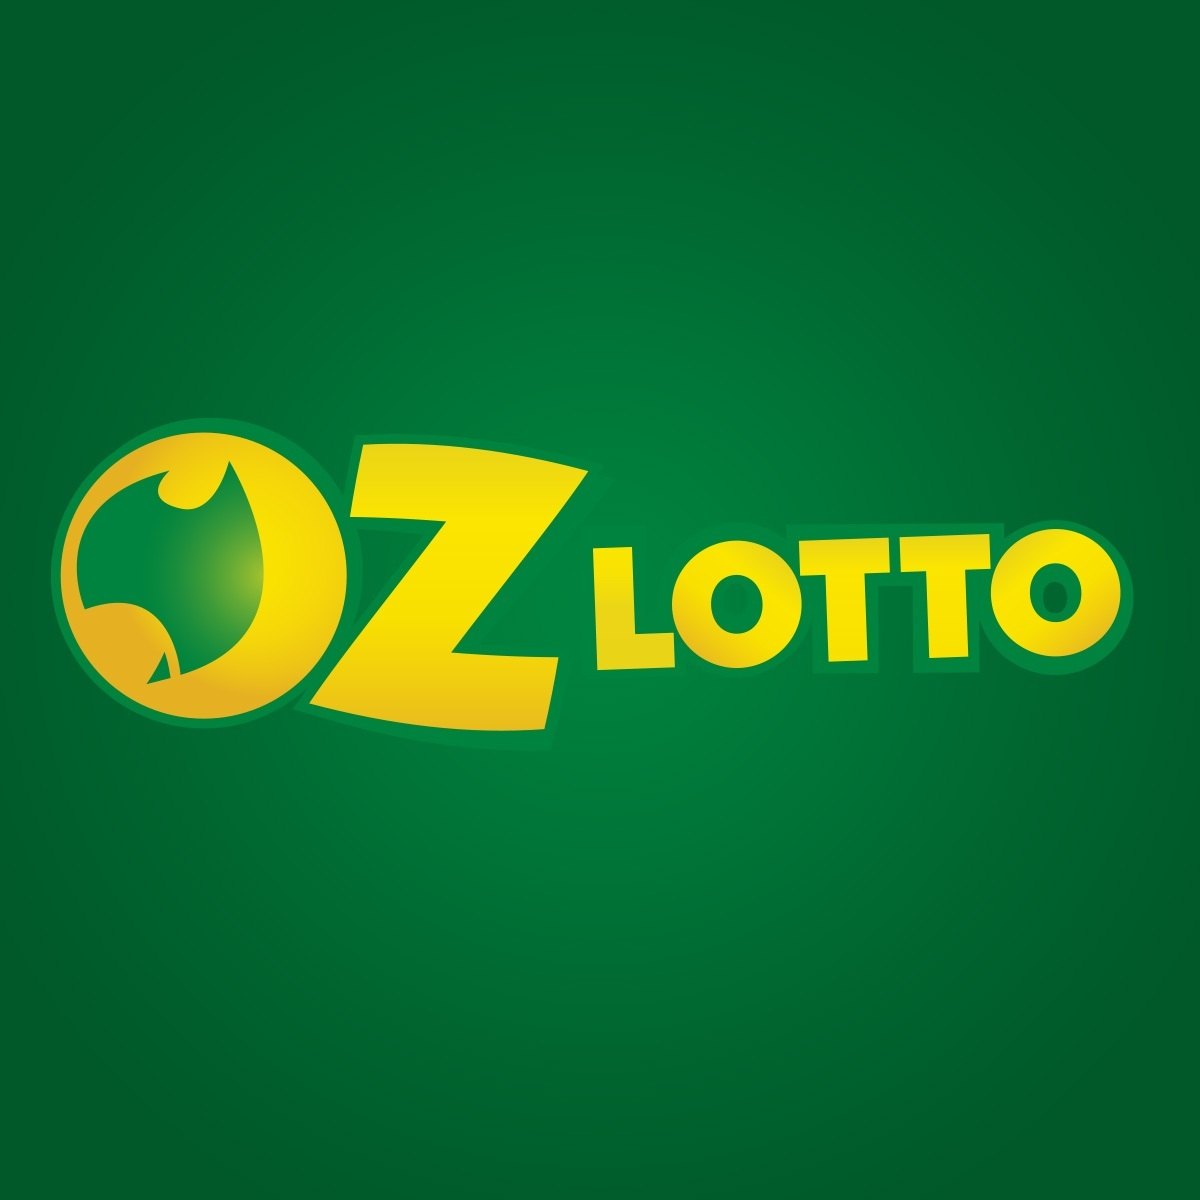 Oz Lotto Jackpot Amount